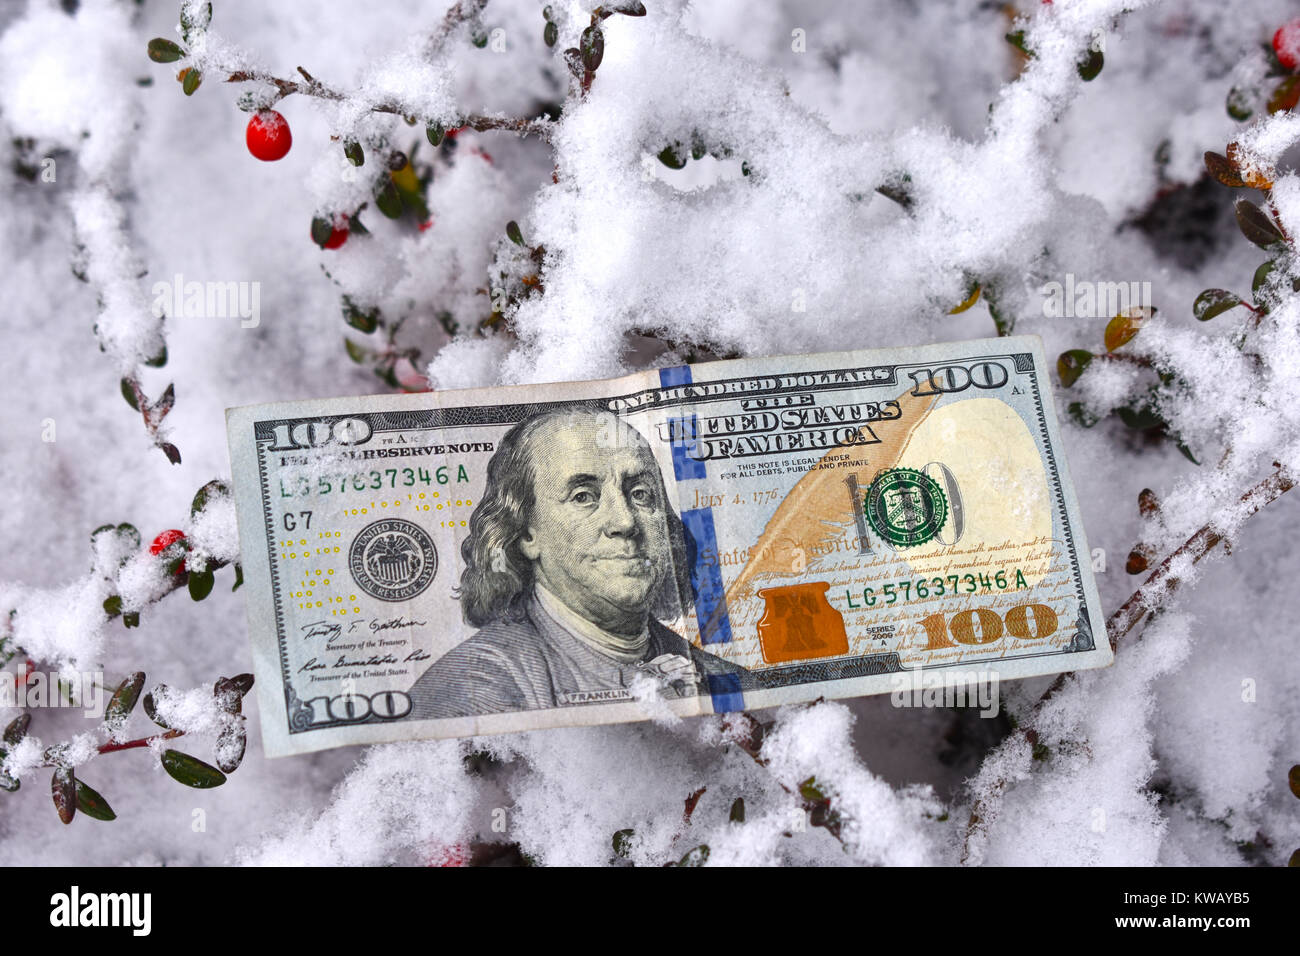 U.S. One Hundred dollar bill on the ground in the snow - concept of healing costs, winter storms, fuel shortage, - Stock Image